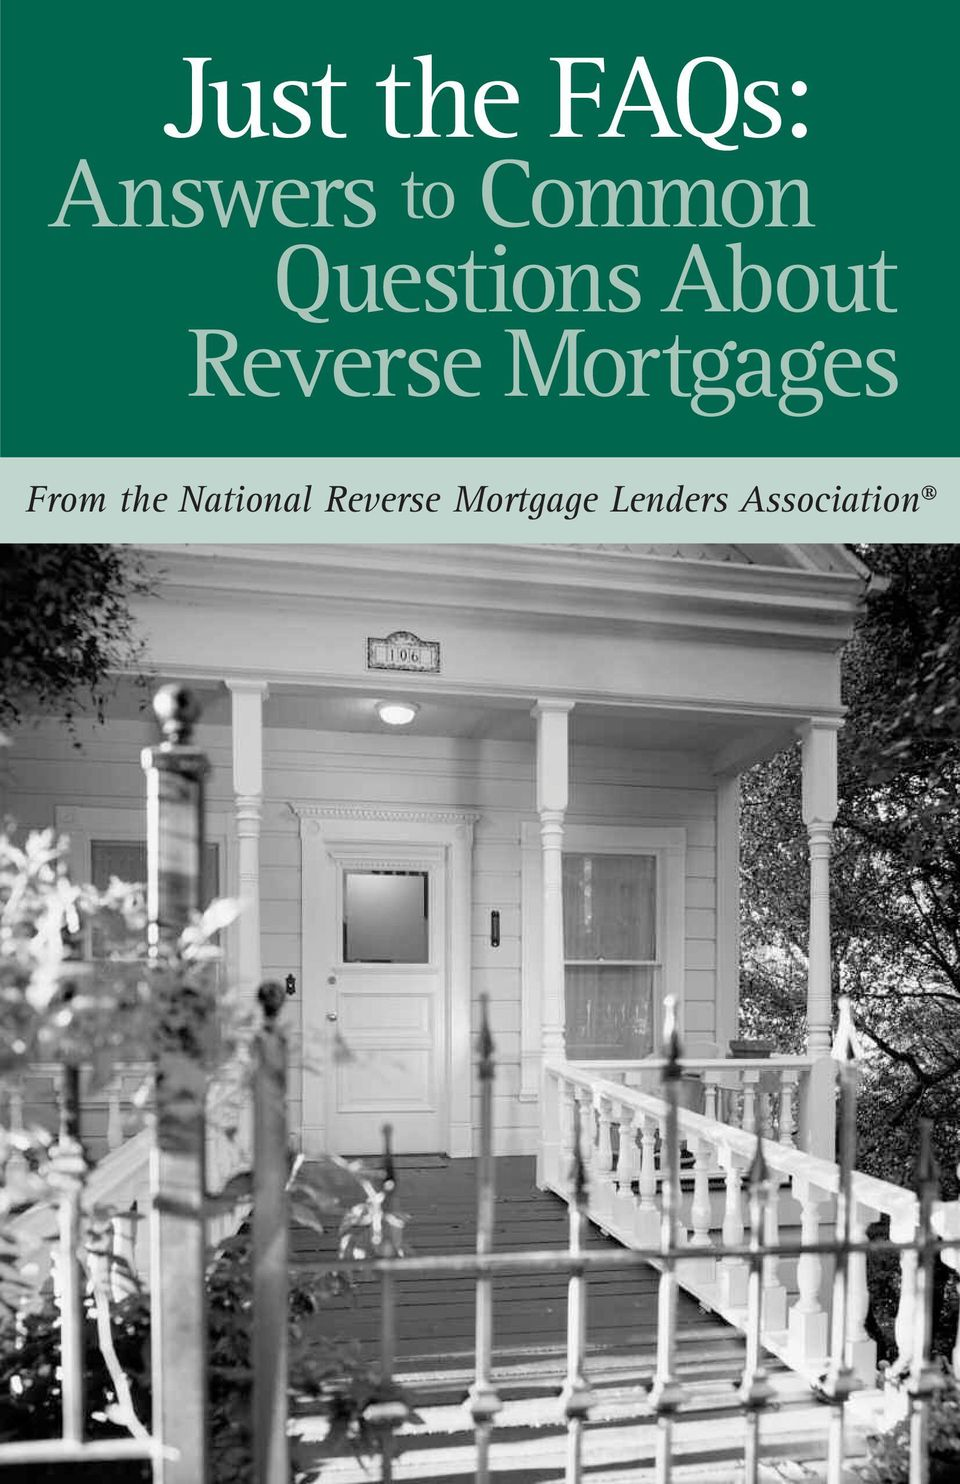 Mortgages From the National